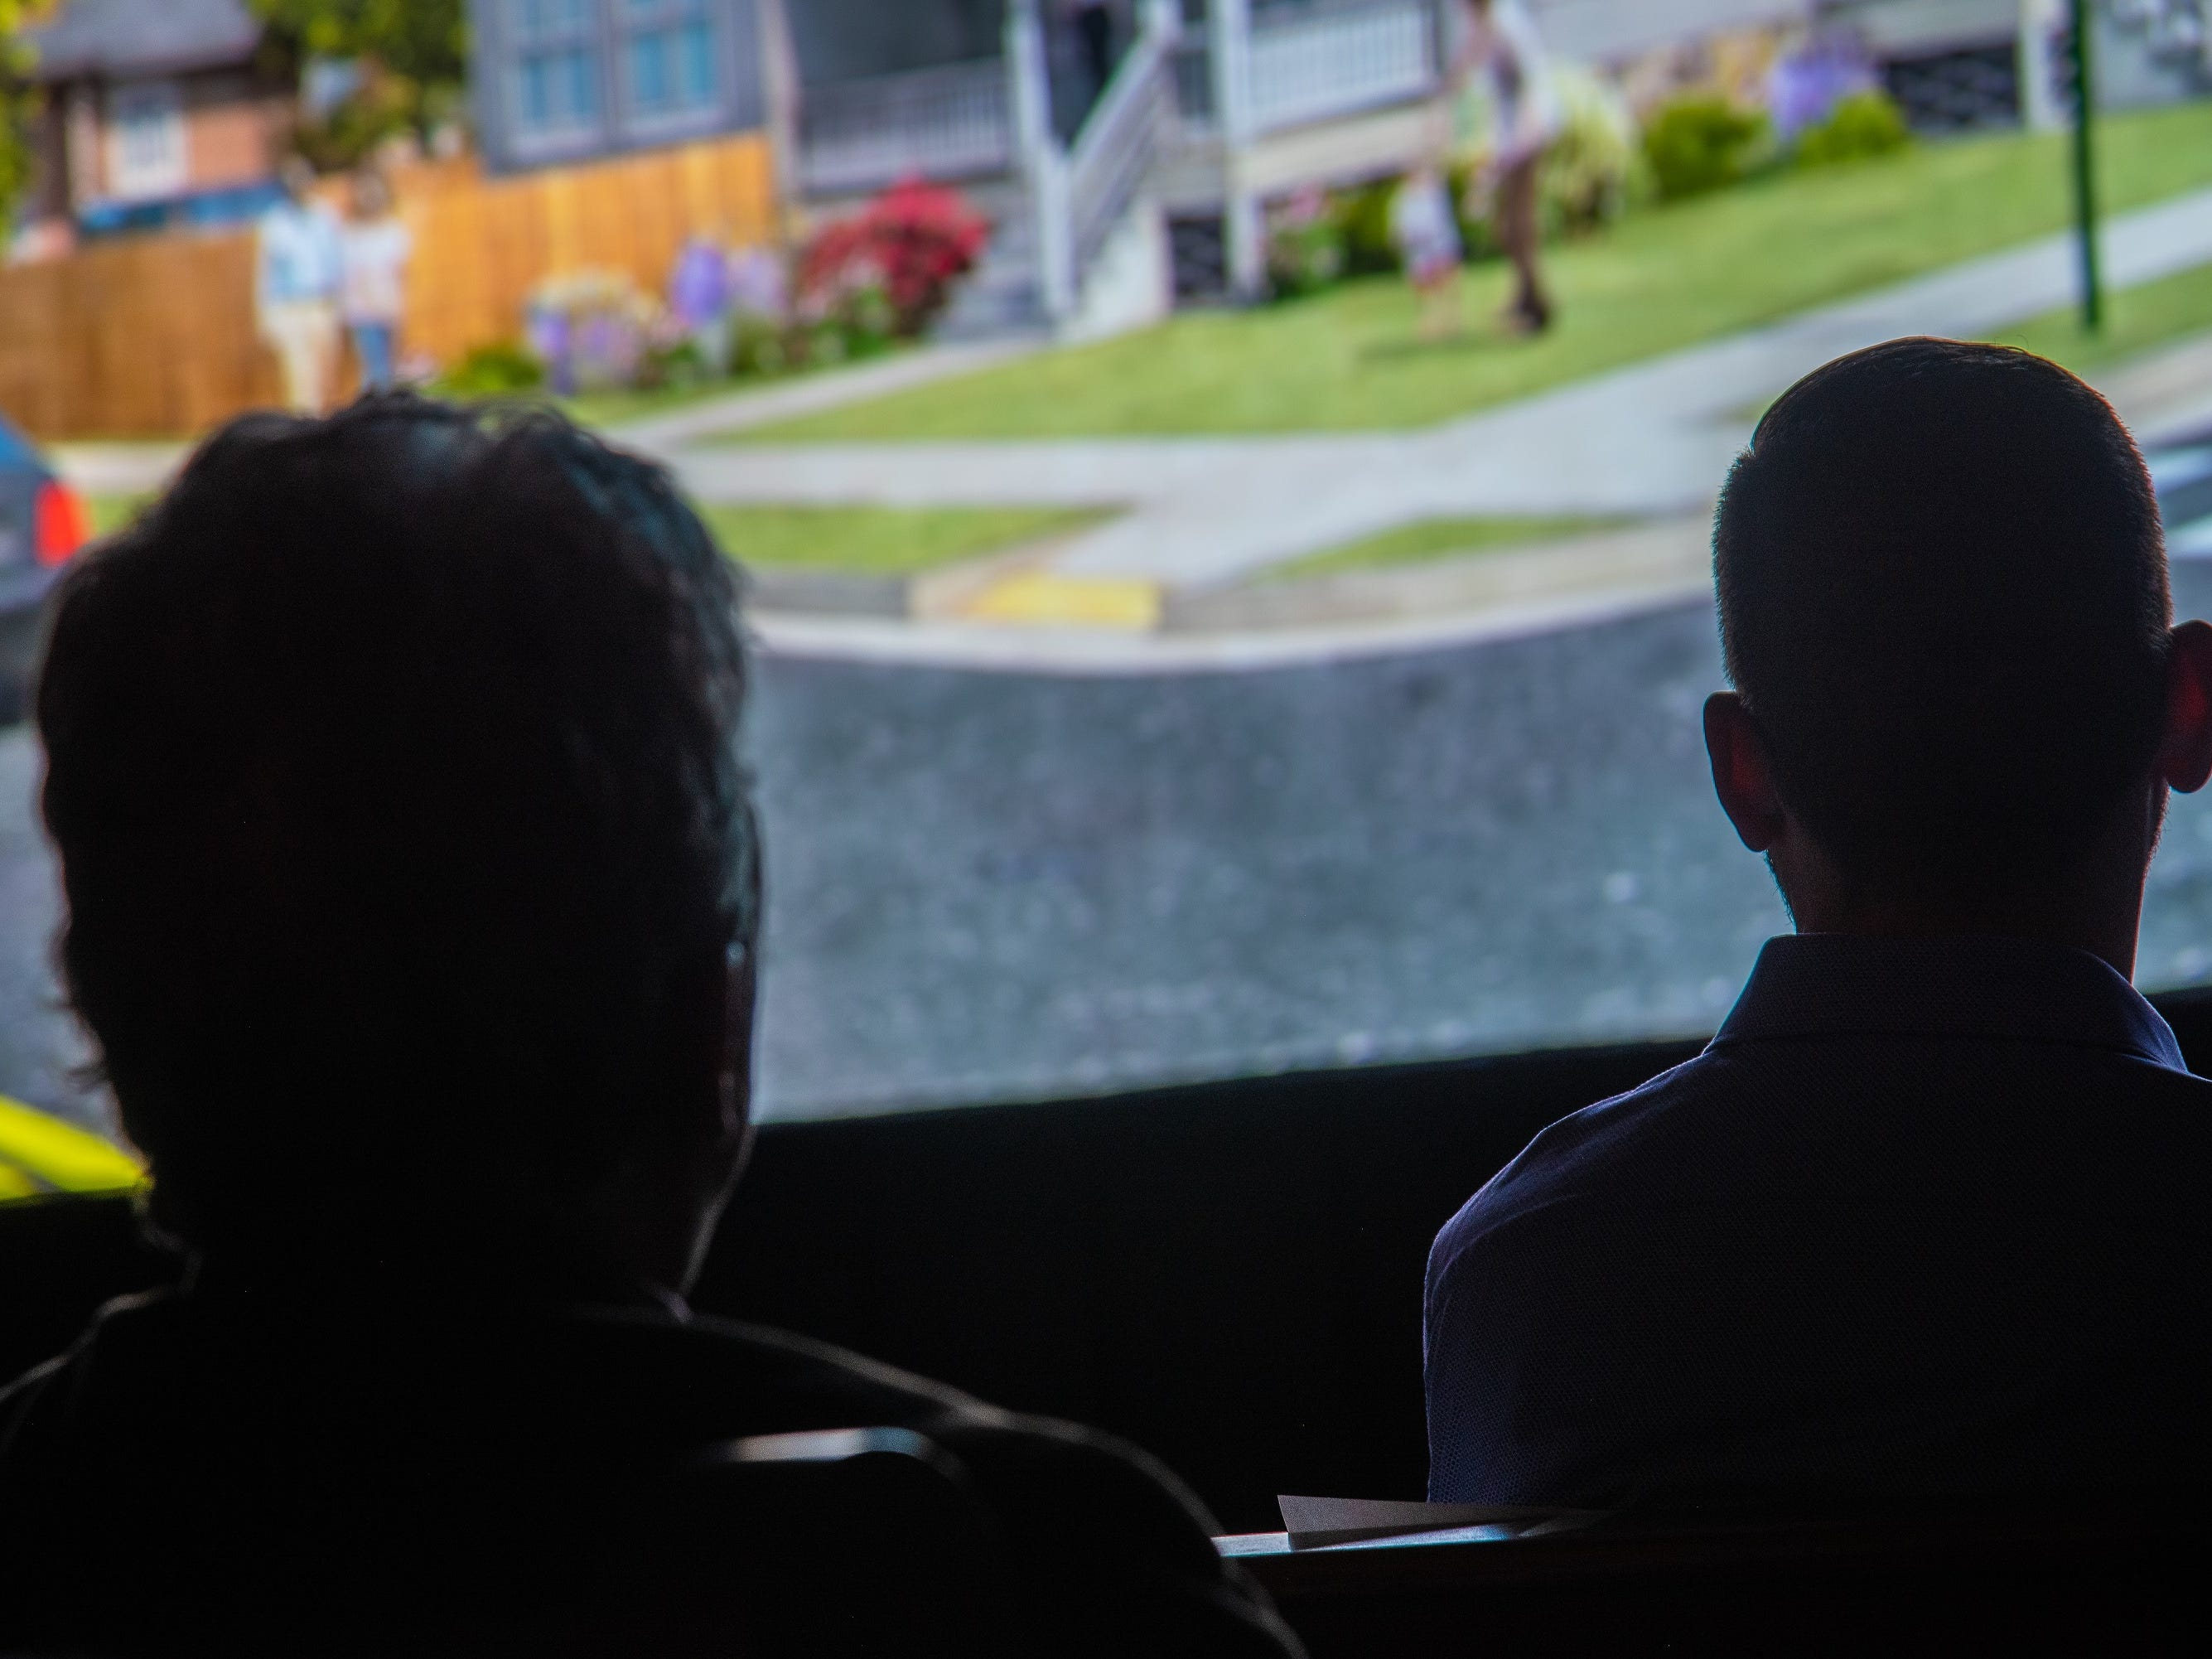 Audience members watch a short film documenting Fort Collins' accomplishments and challenges of 2018 during the annual State of the City Address on Tuesday, January 29, 2019, at the Lyric Cinema in Fort Collins, Colo.